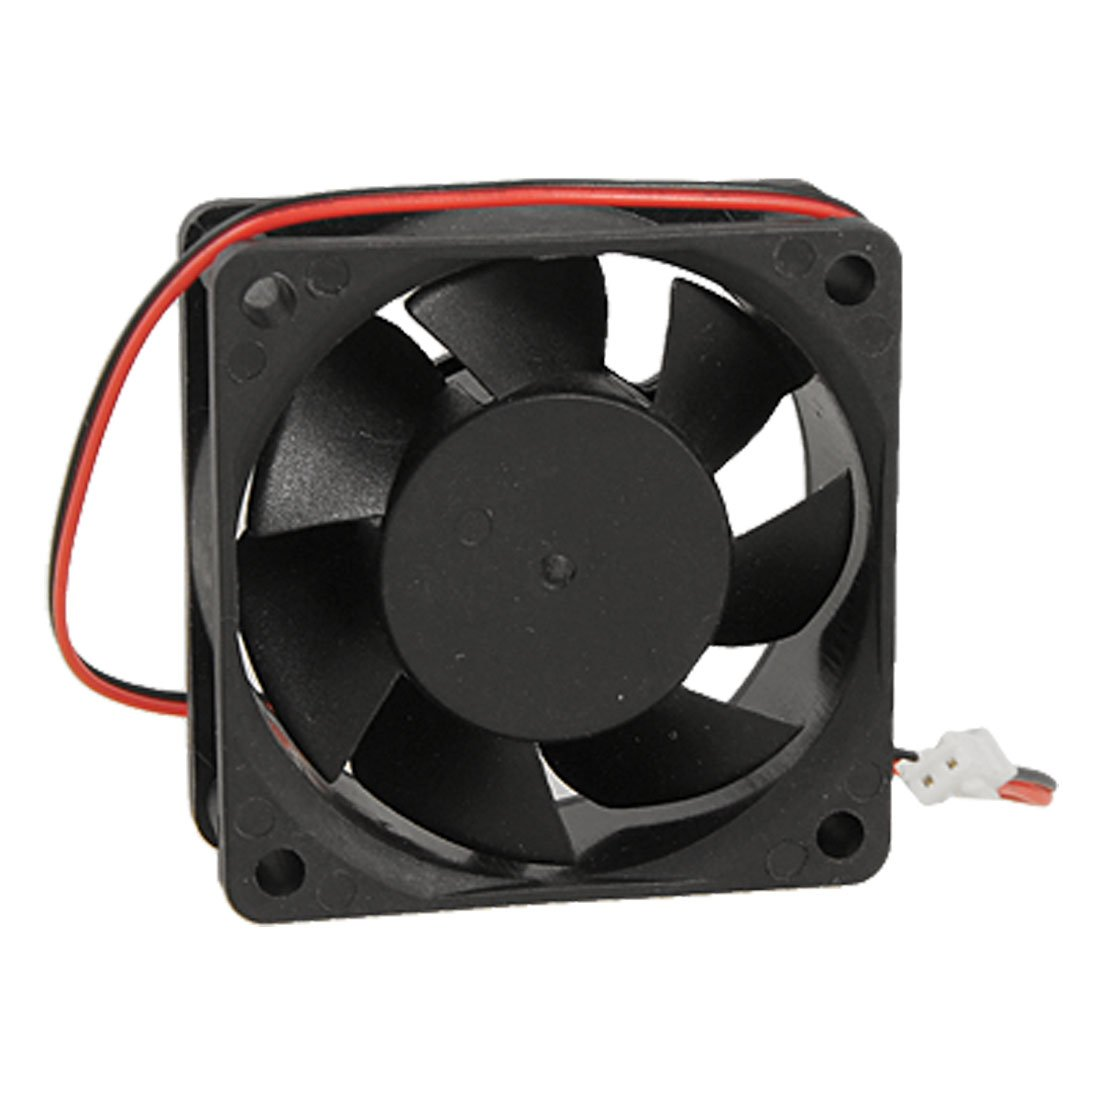 YOC Hot 60mm x 25mm DC 12V 025A 2Pin Cooling Fan For Computer CPU Cooler